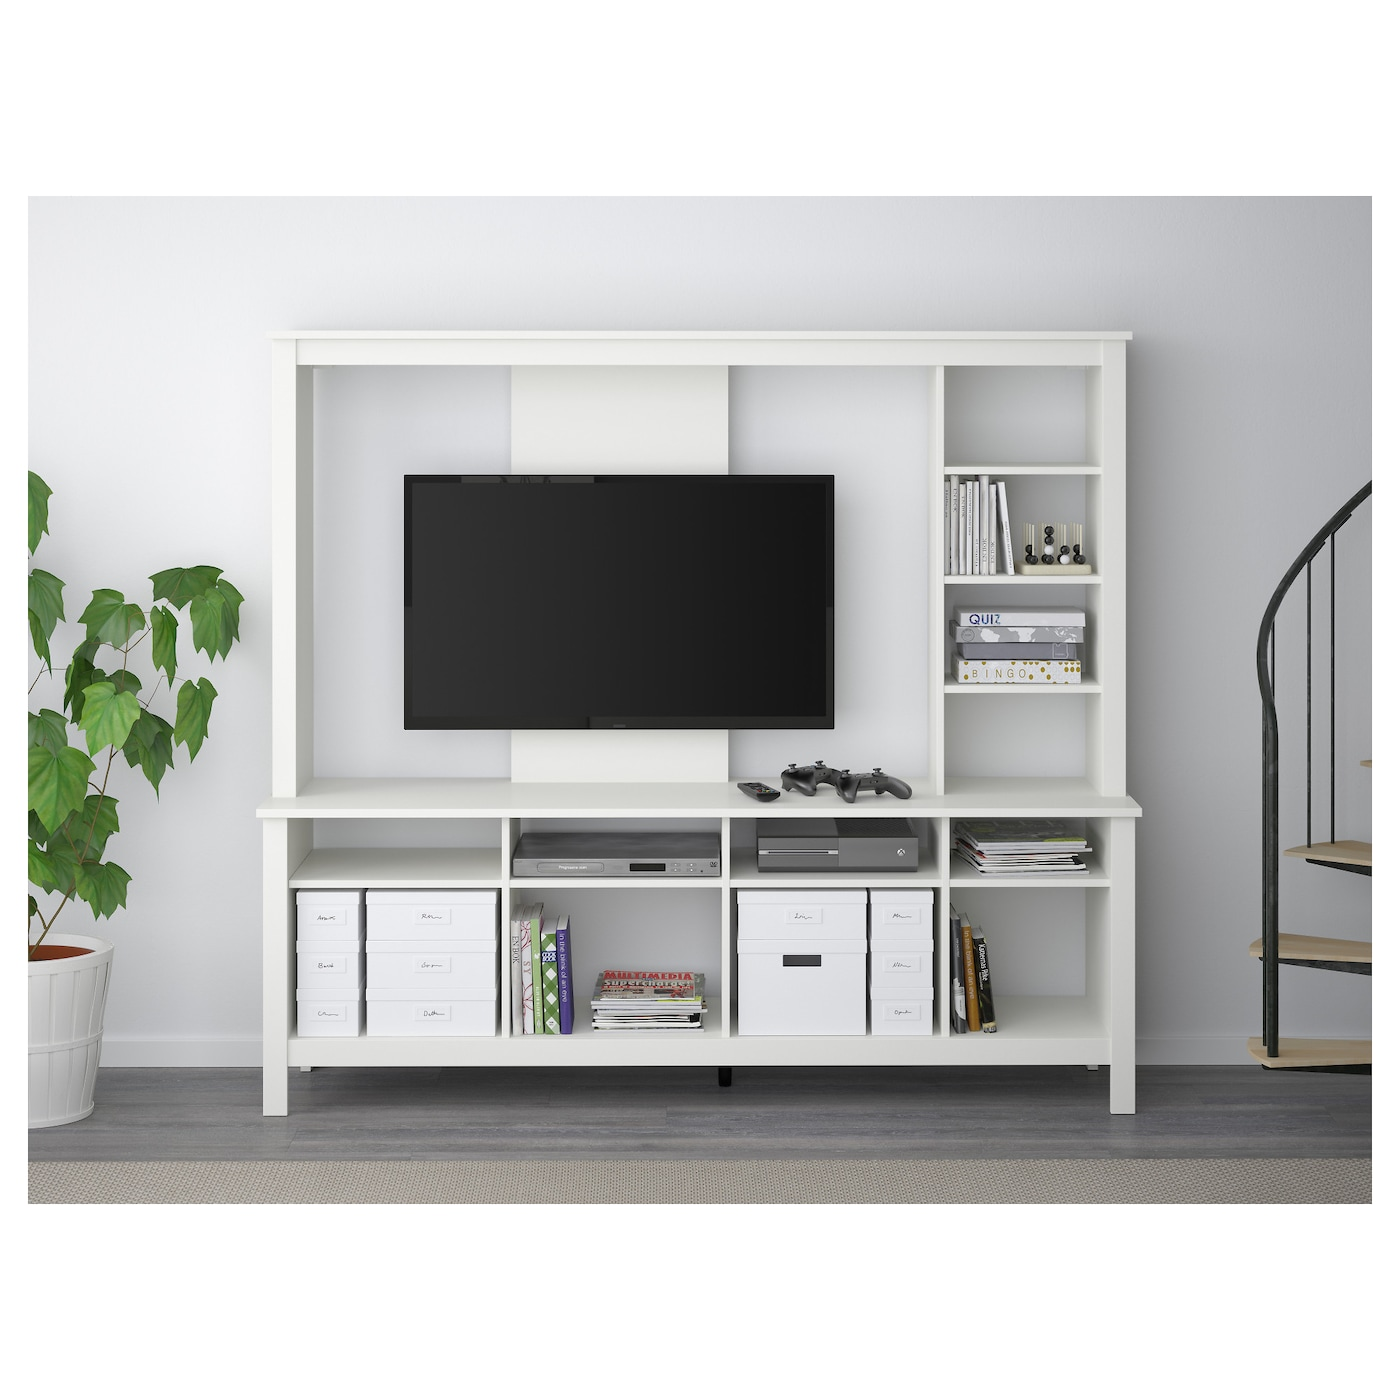 IKEA TOMNÄS TV storage unit